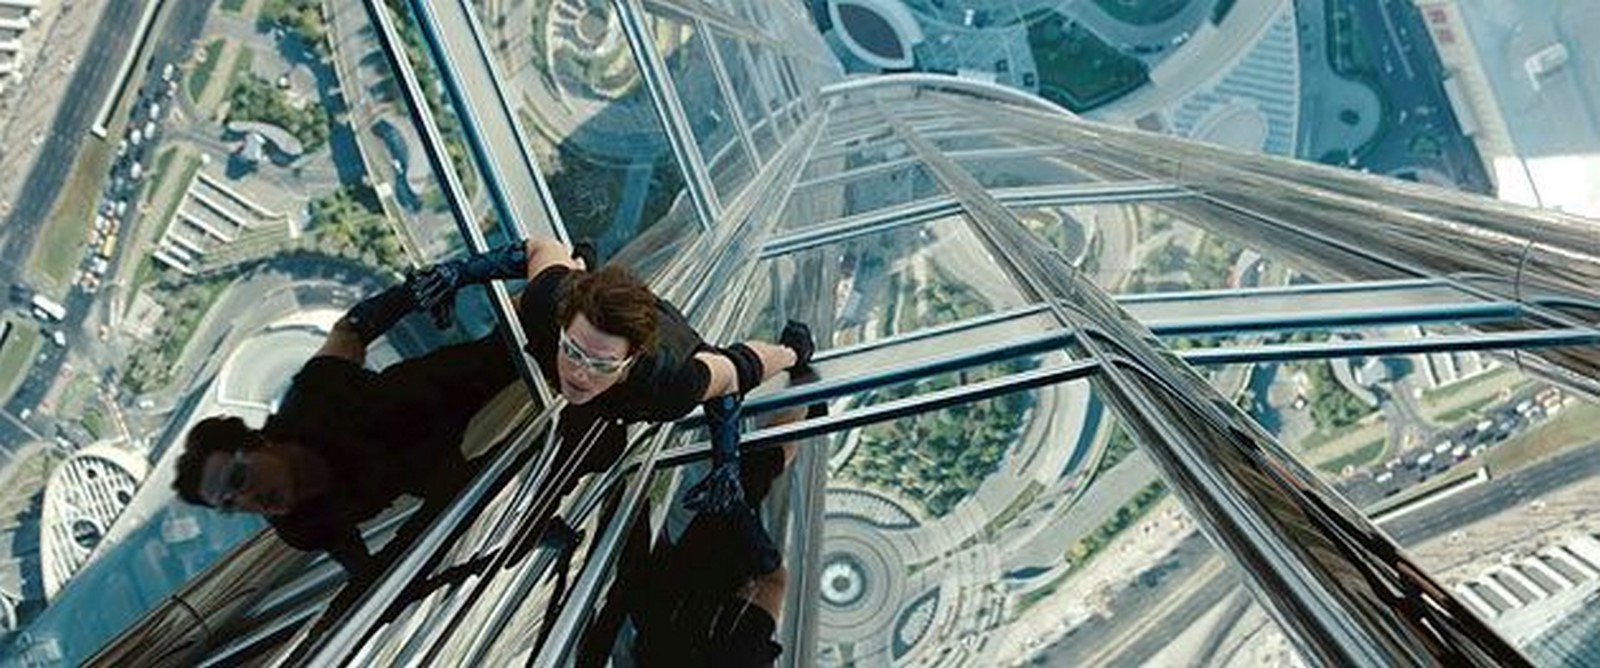 How are famous high-rise buildings used in movies - Sheet4